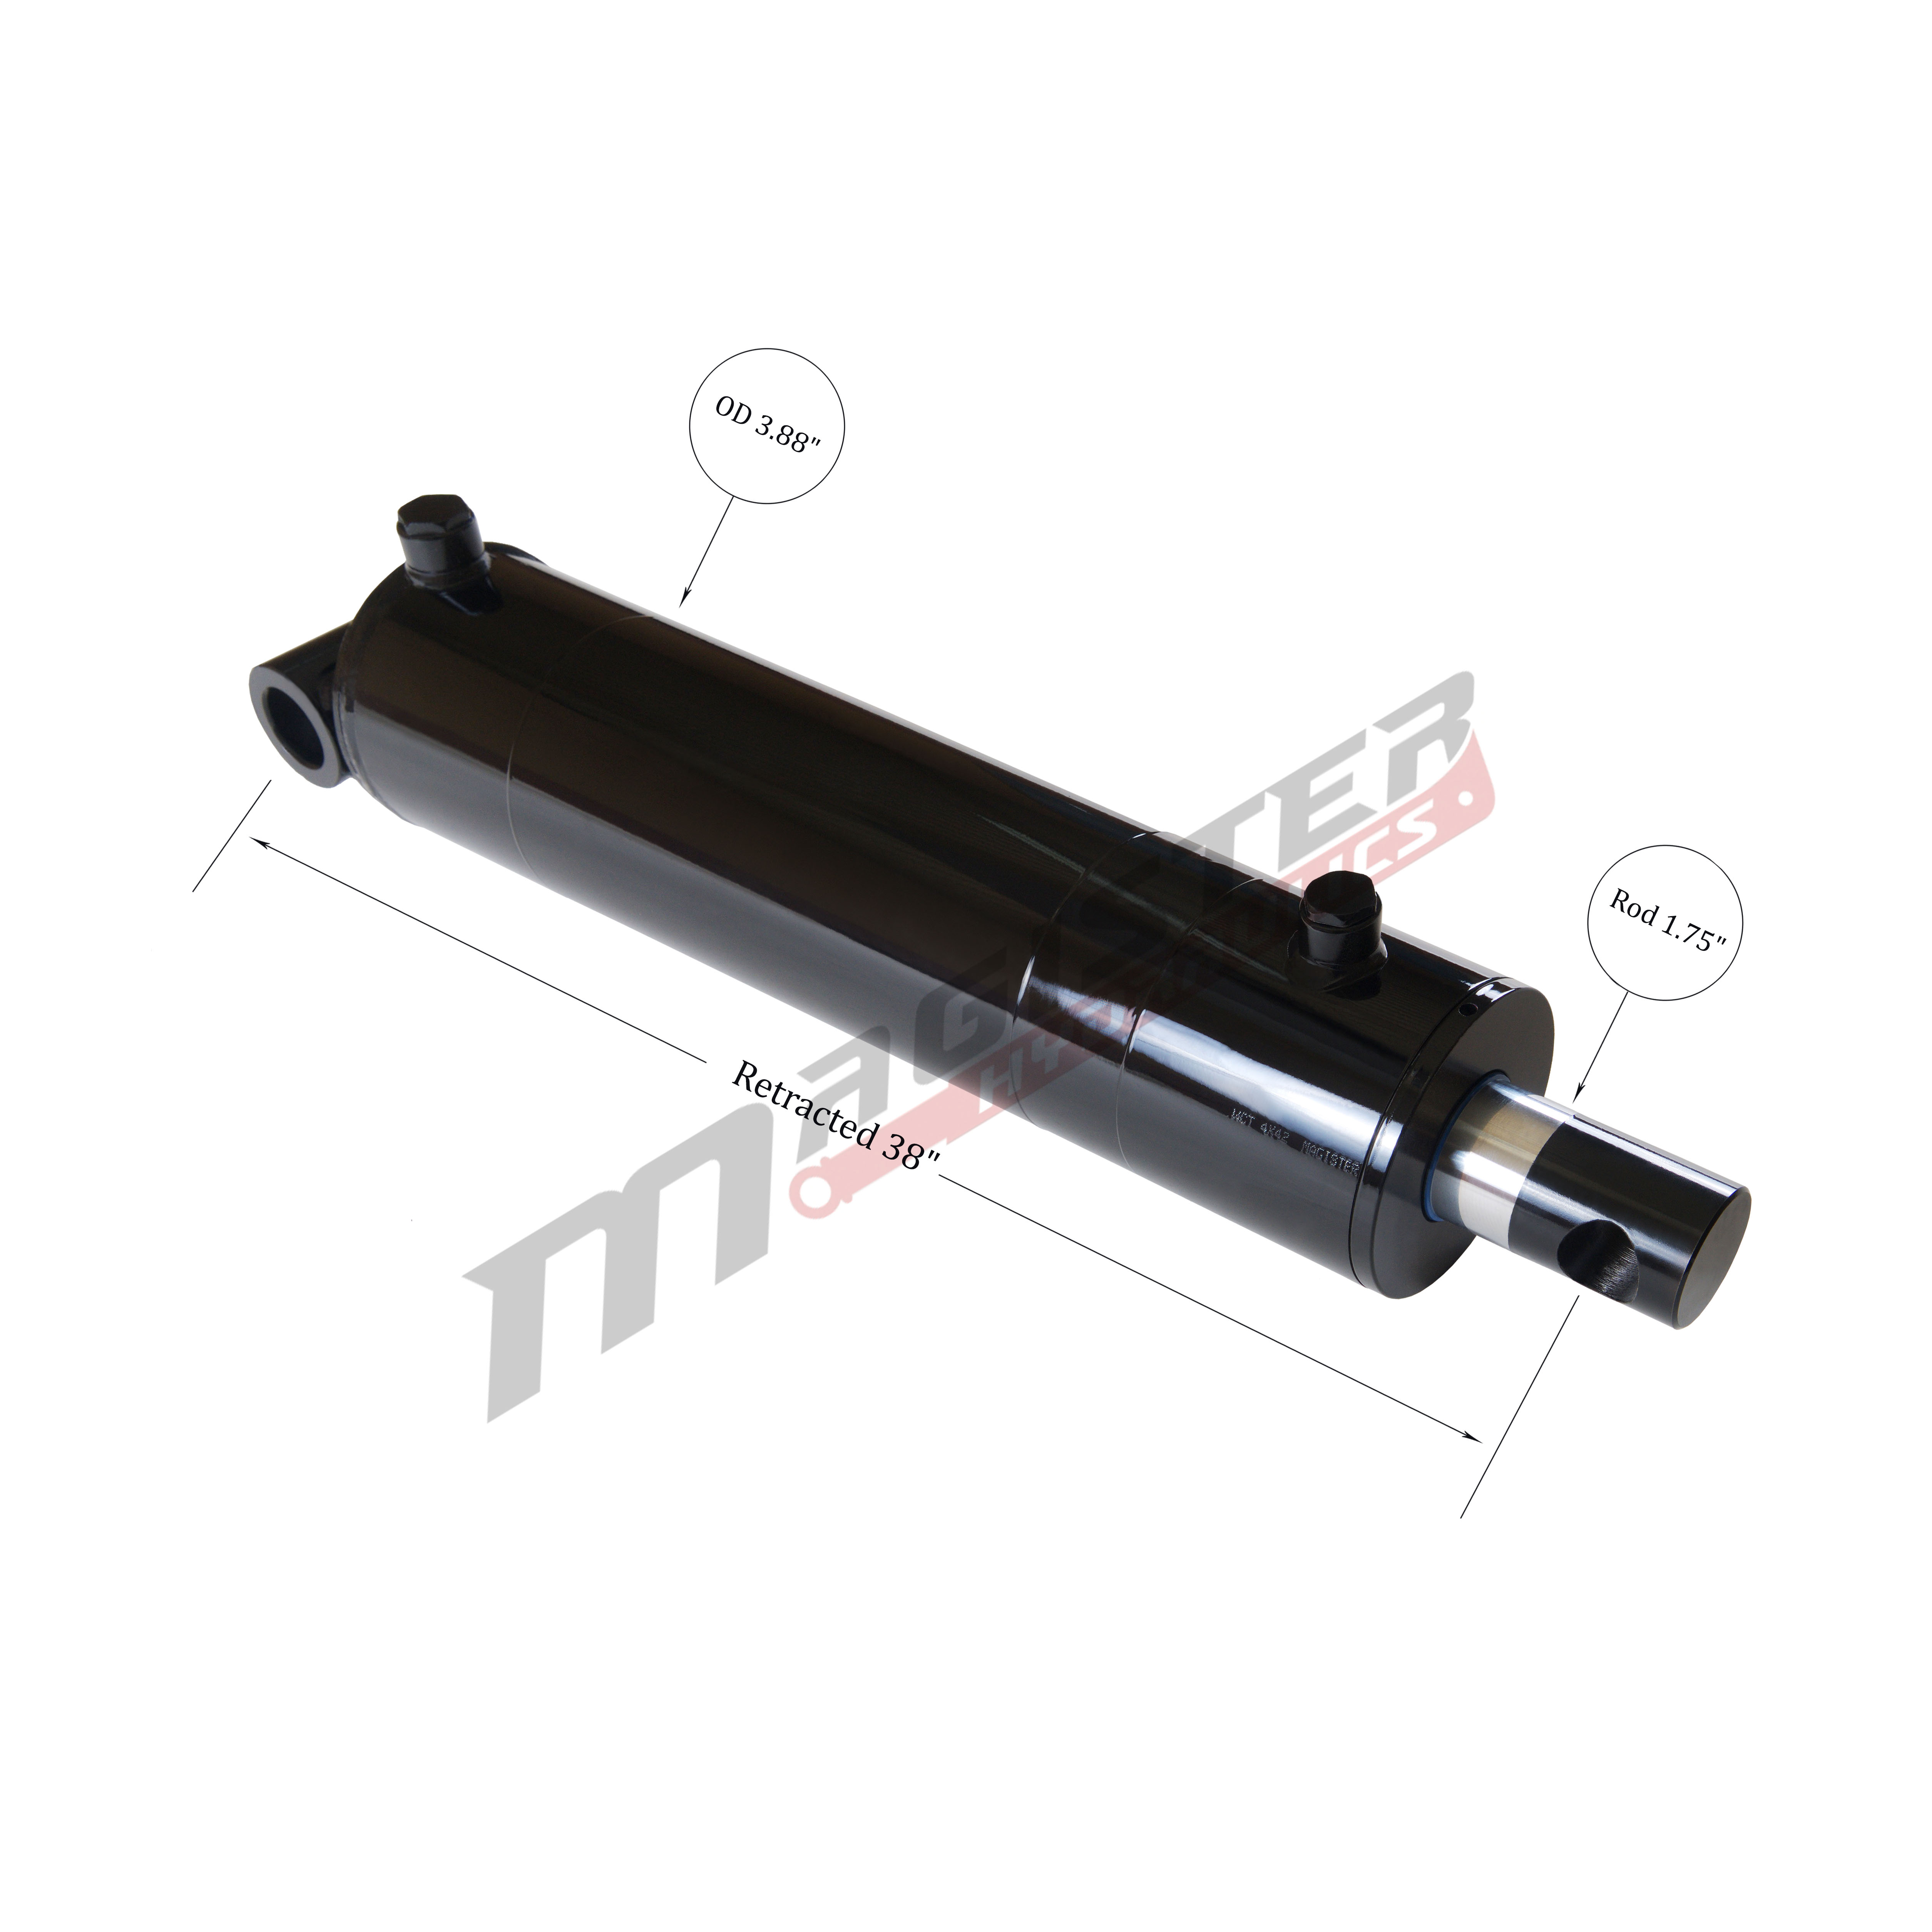 3.5 bore x 30 stroke hydraulic cylinder, welded pin eye double acting cylinder | Magister Hydraulics